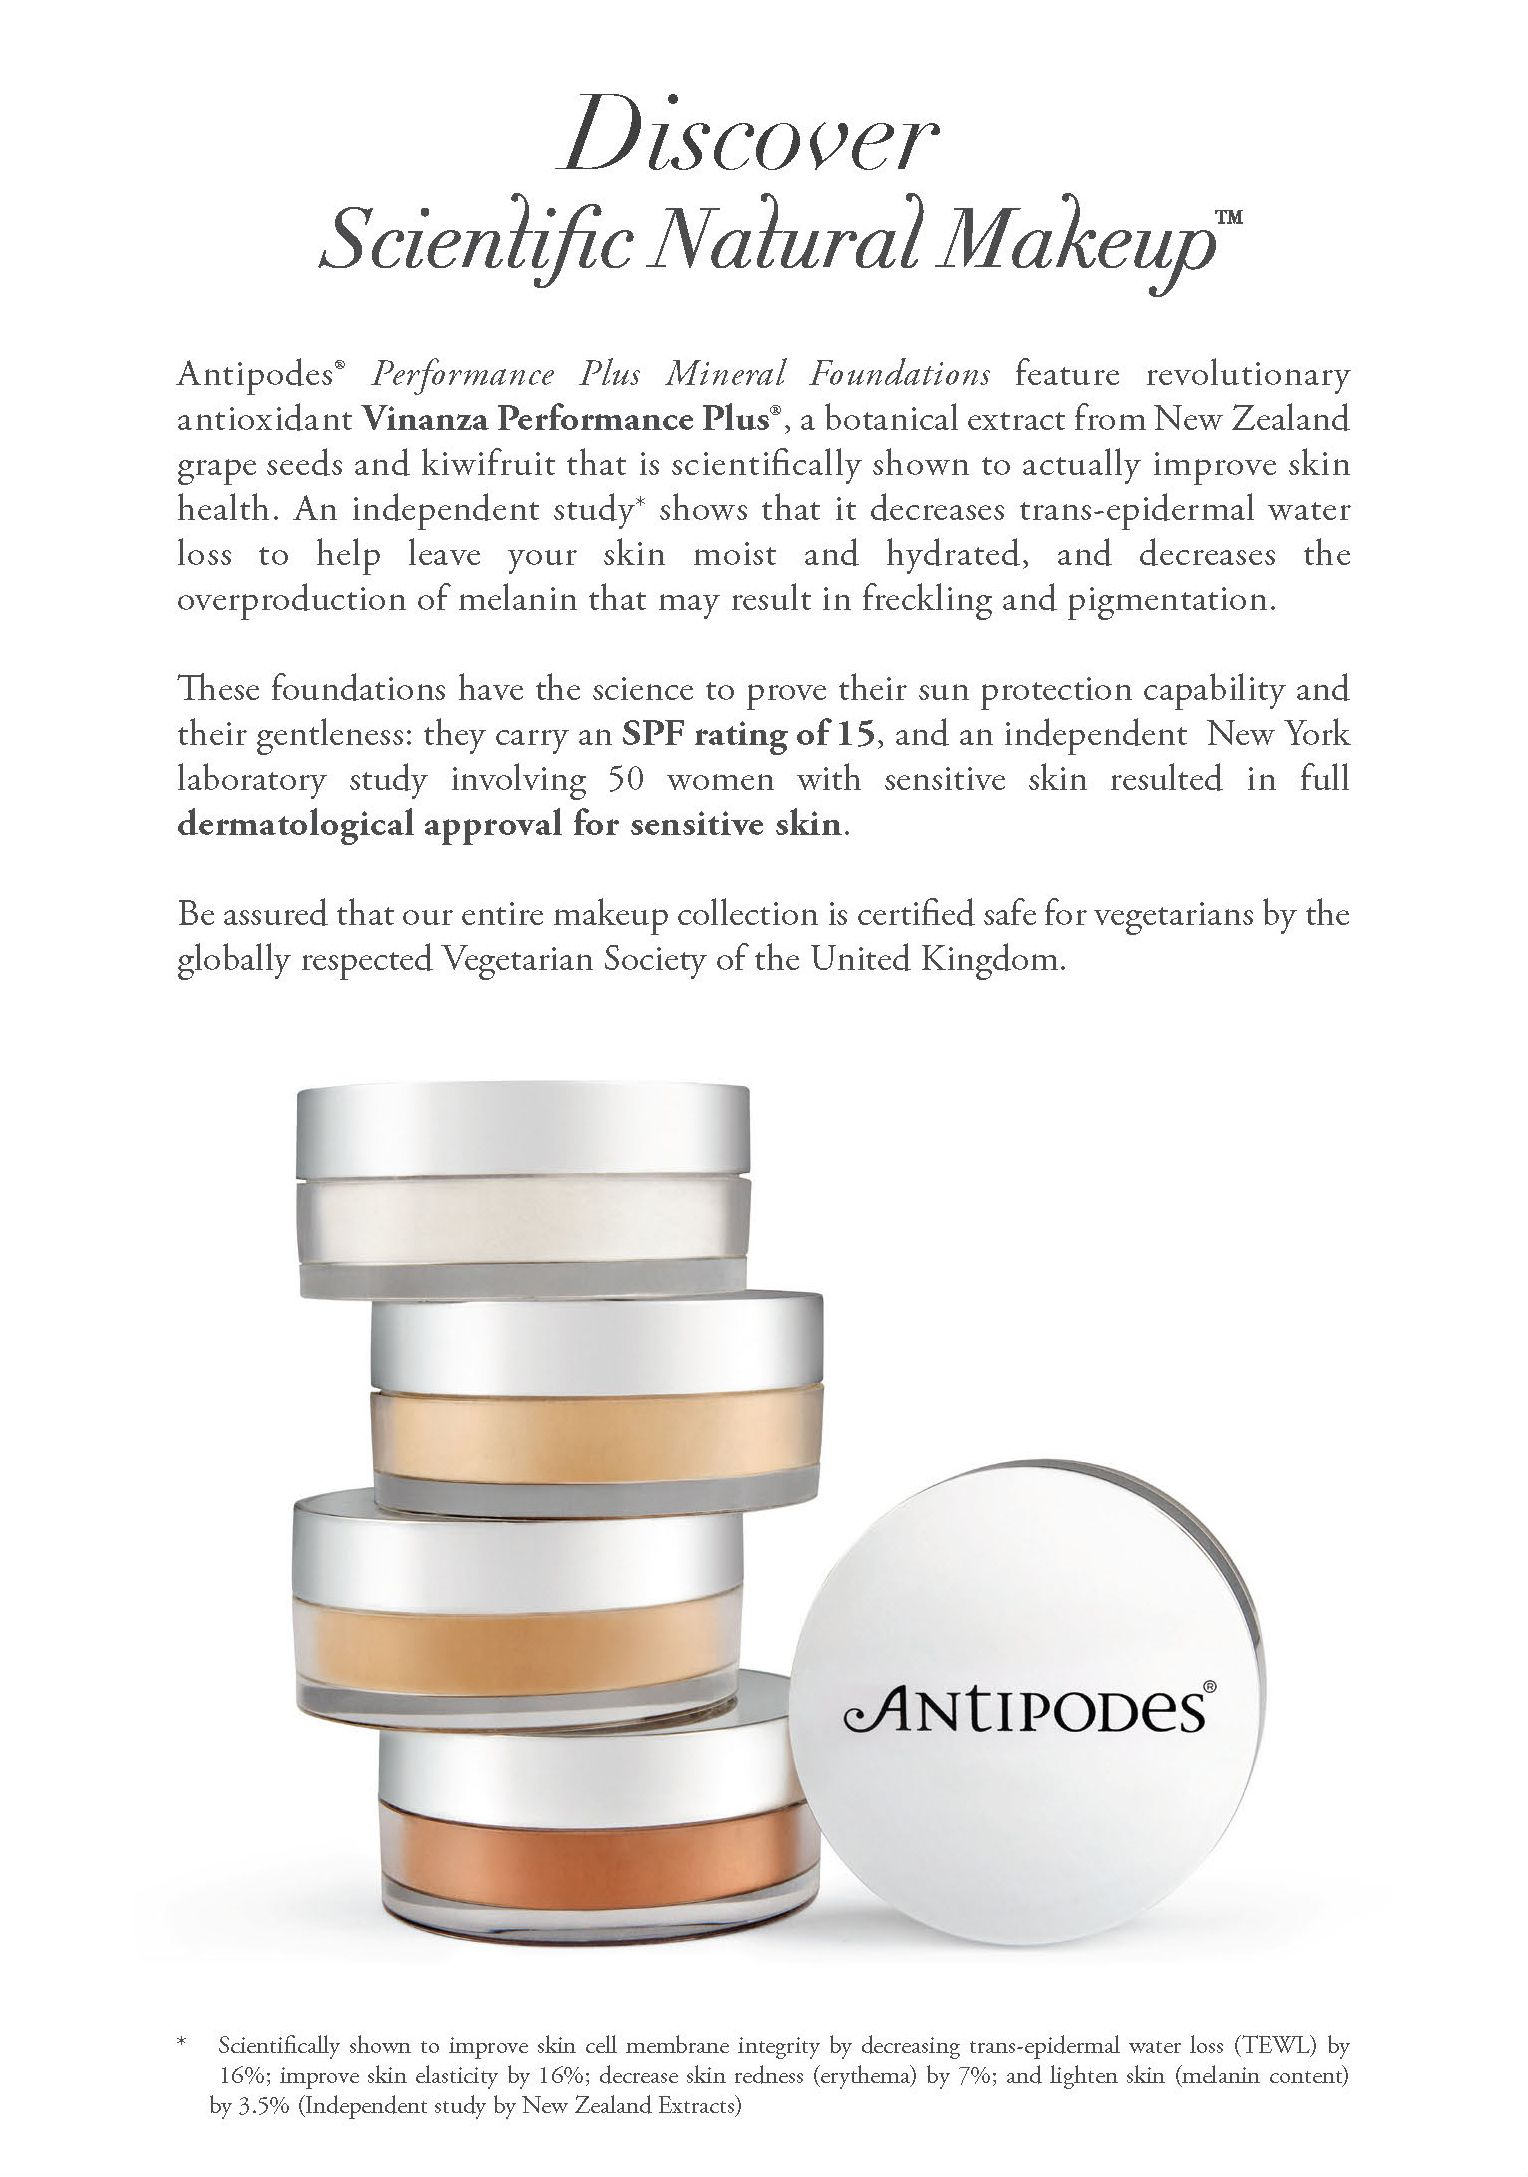 @antipodesnz. Antipodes is available online at http://kirkcaldies.co.nz/brands/antipodes/. Complimentary delivery within New Zealand for all online purchases.